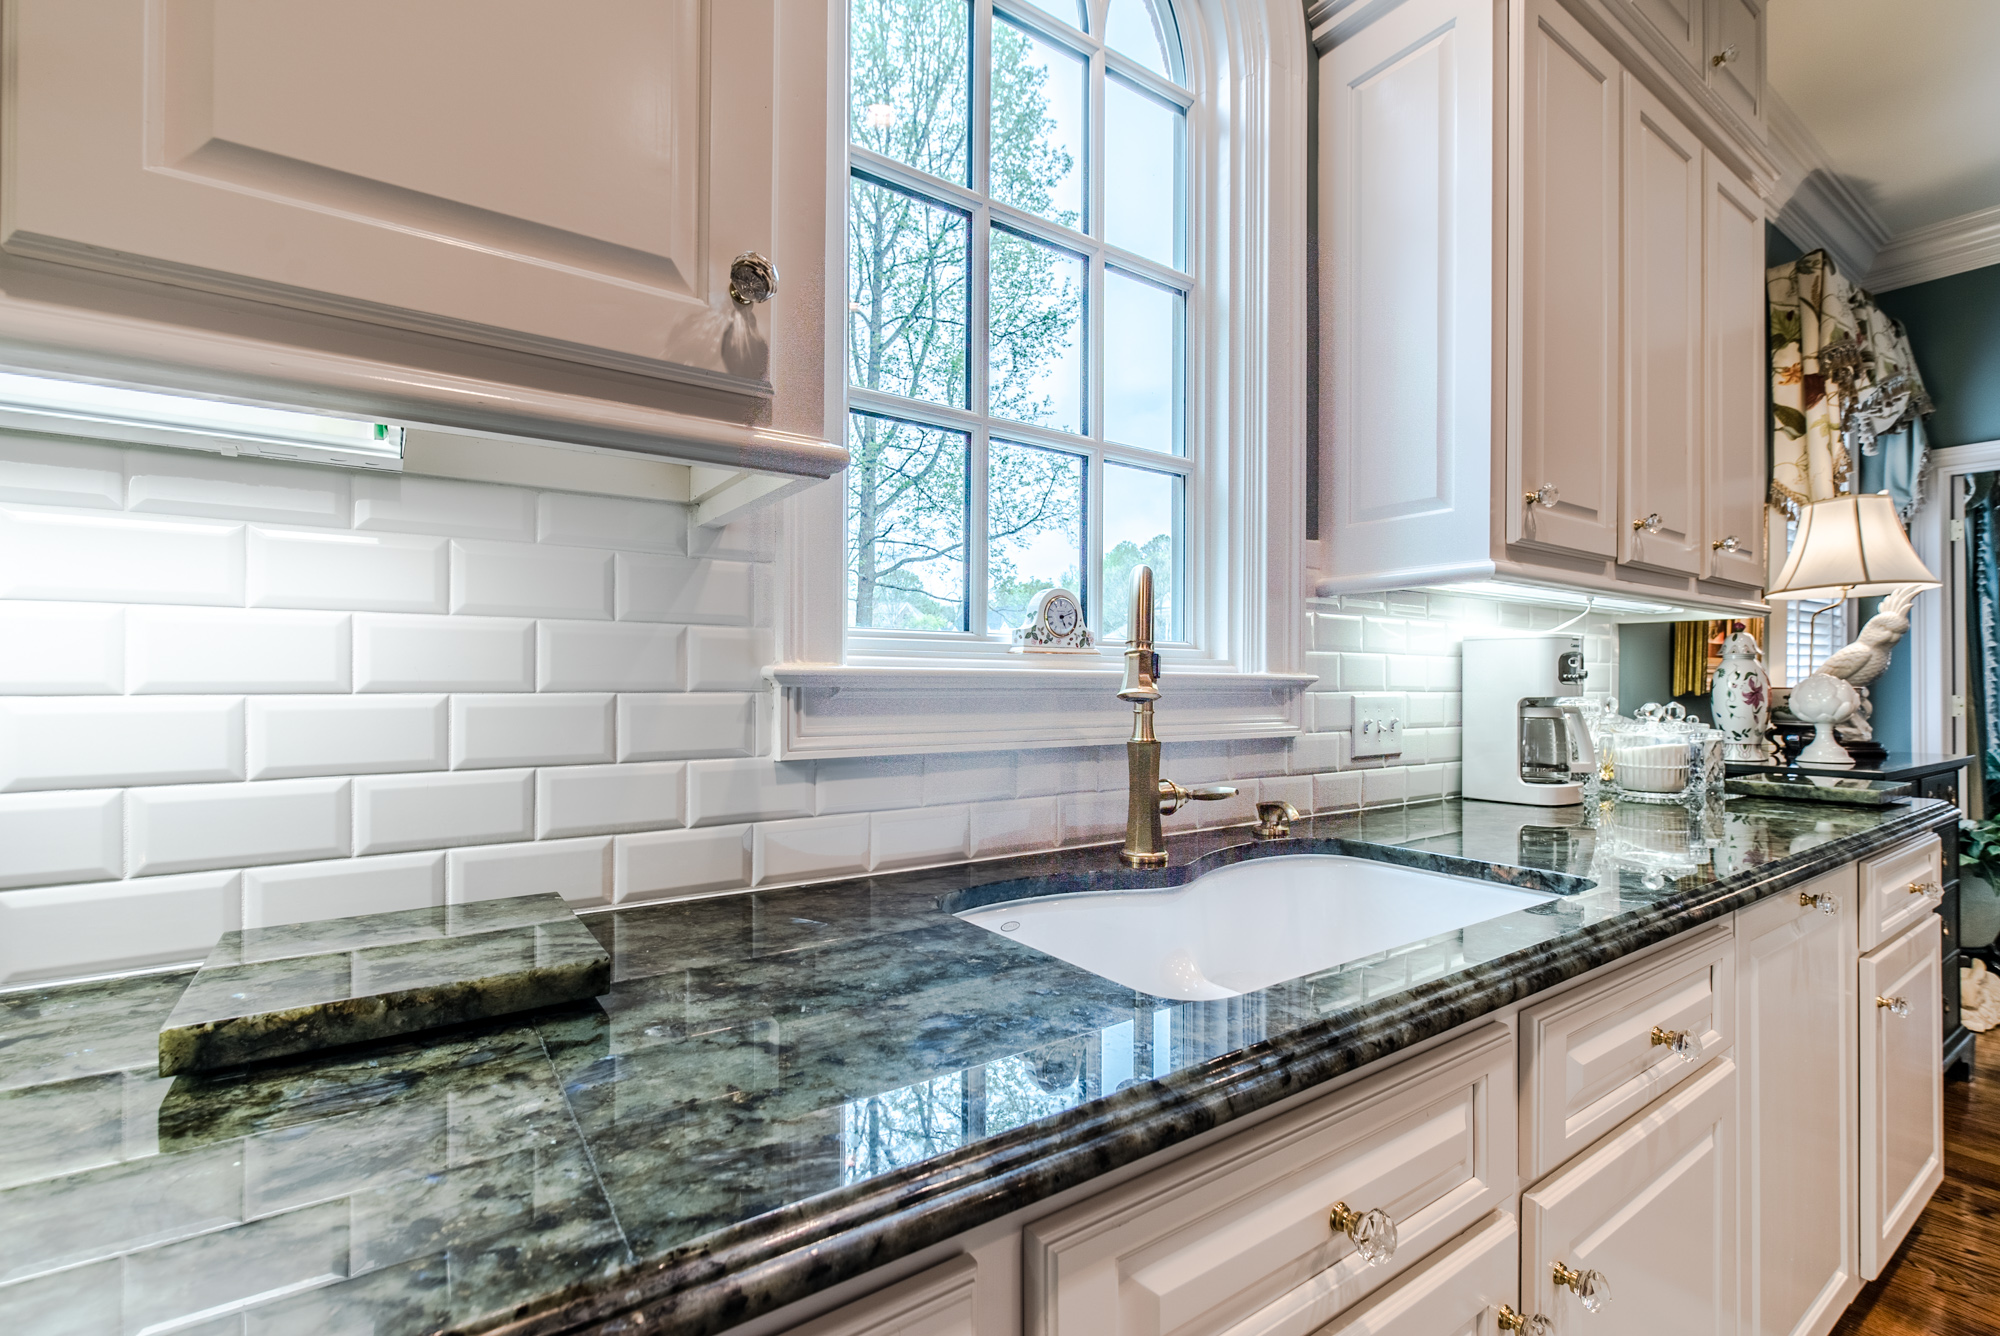 Subway tile backsplash with white subway tiles at East Coast Granite & Tile